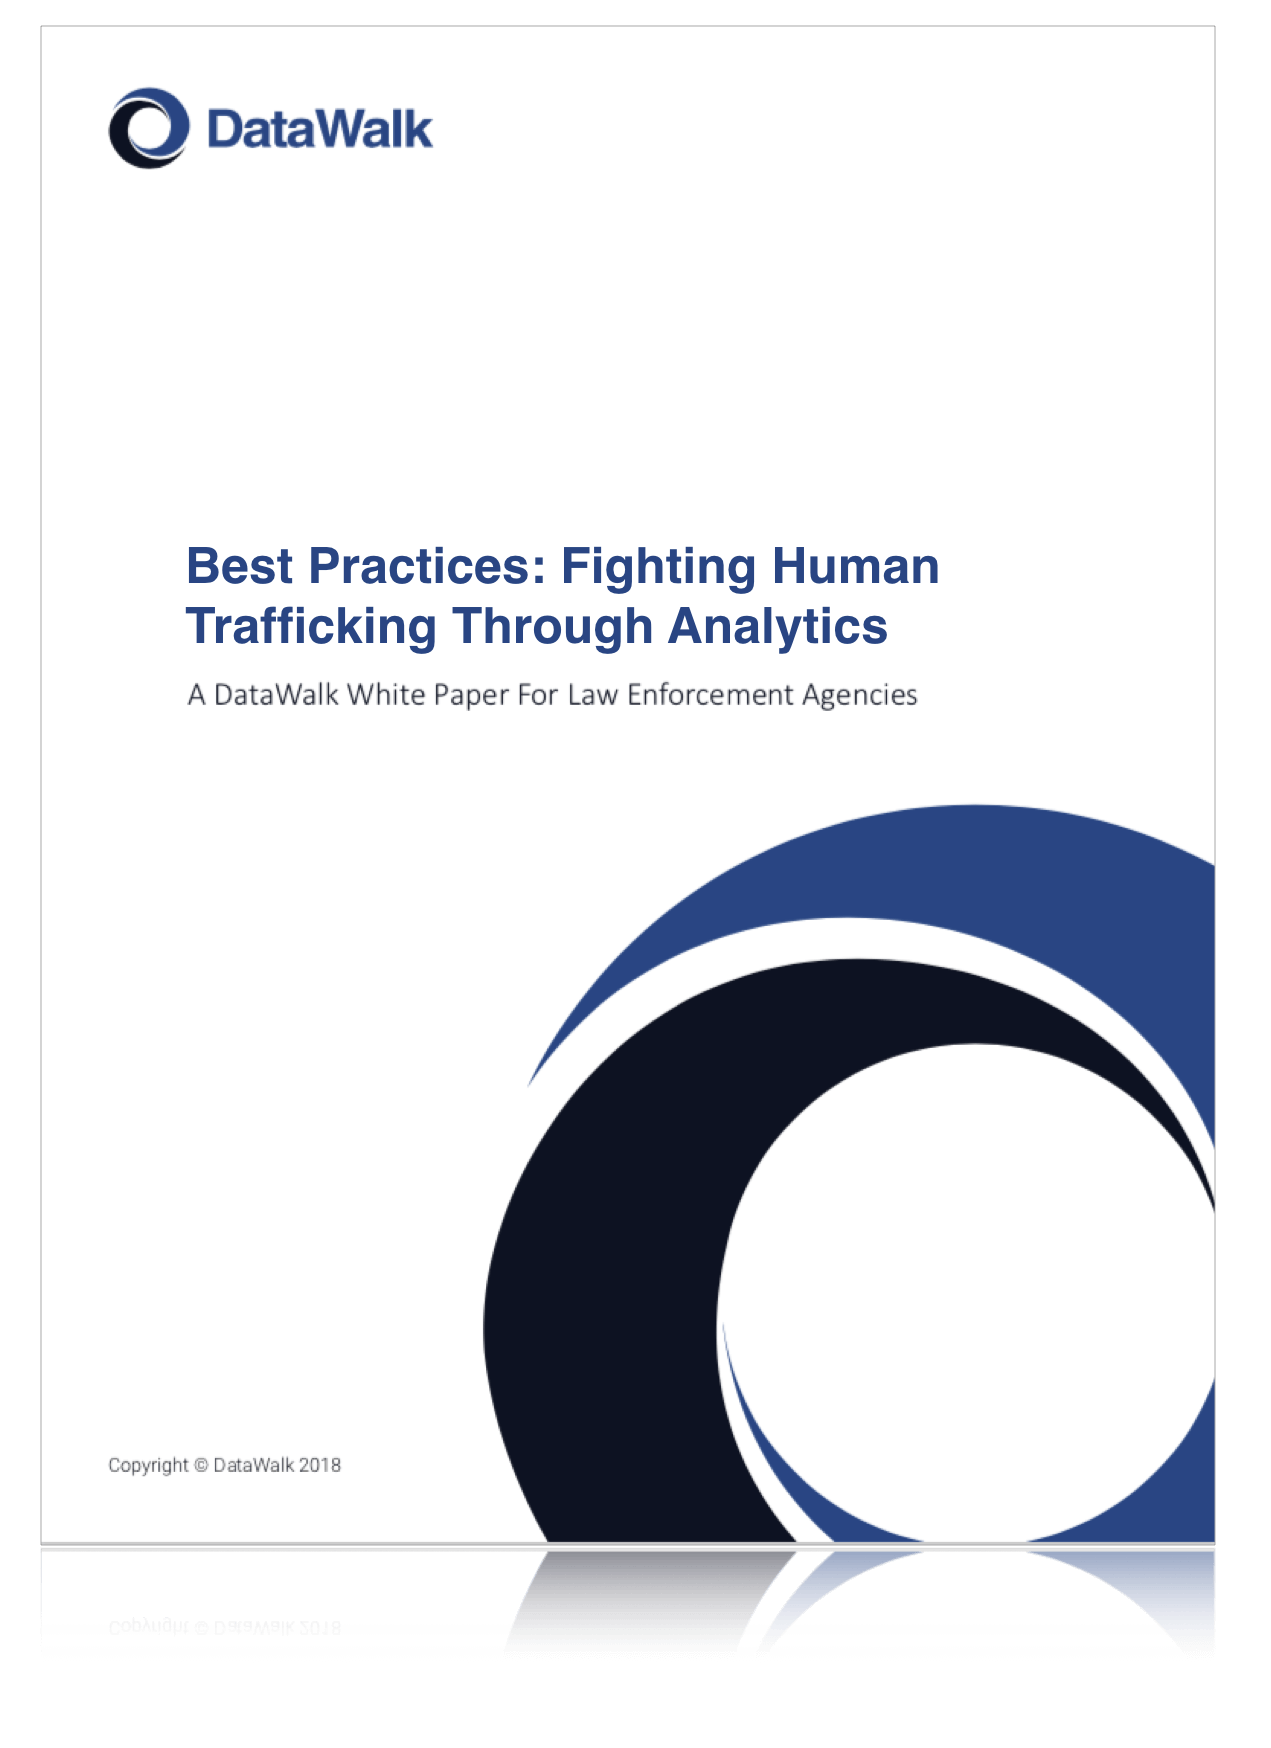 Best Practices: Fighting Human Trafficking Through Analytics